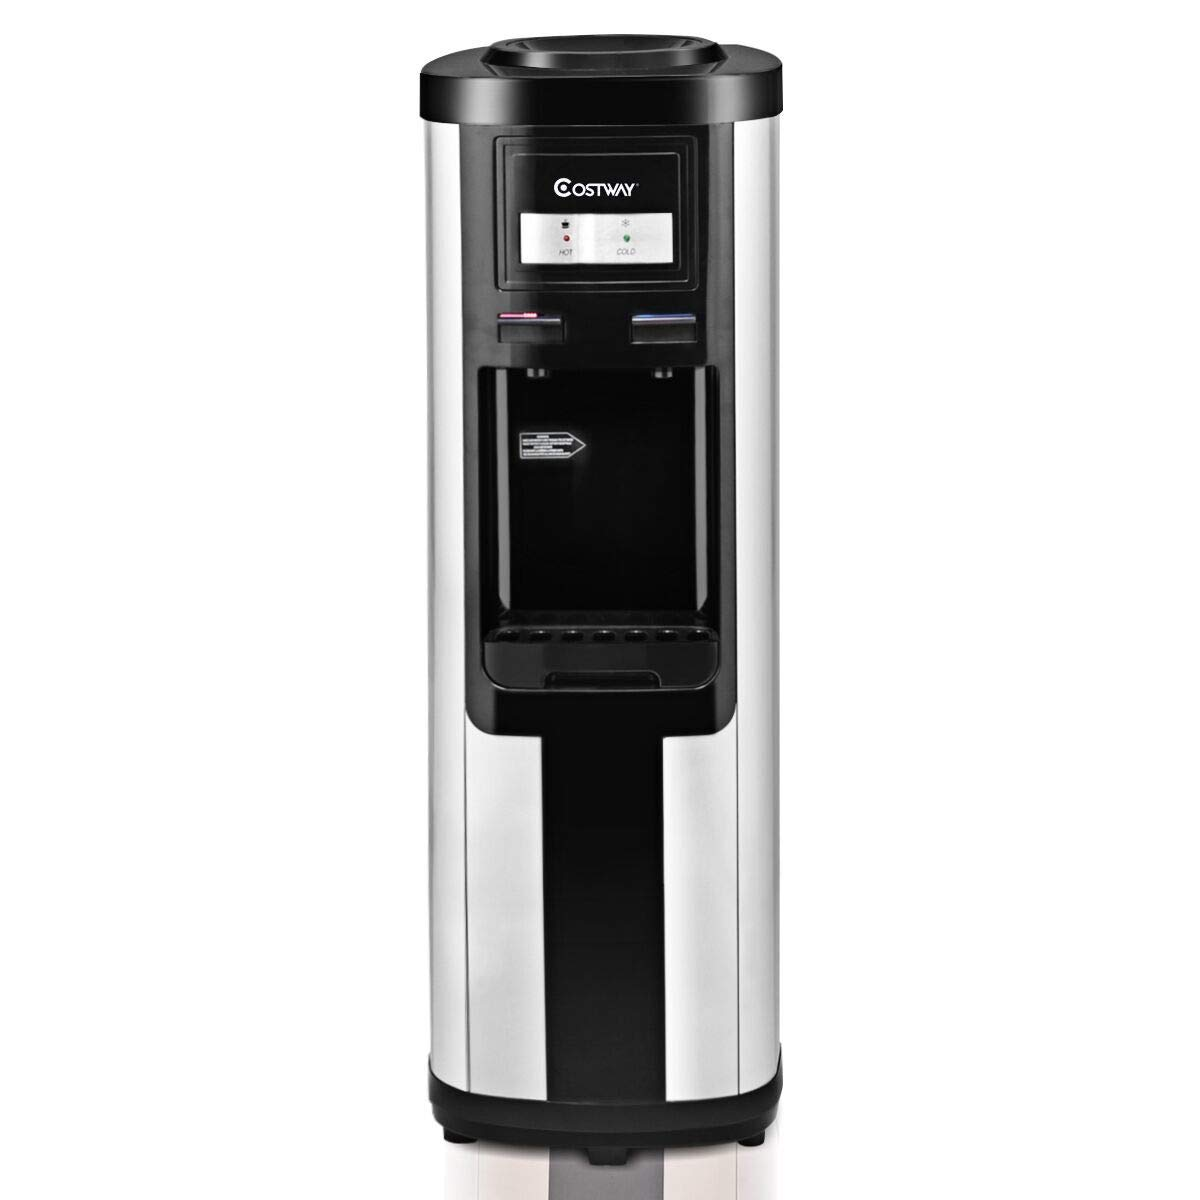 Costway 5 Gallon Water Cooler Dispenser Top Loading Stainless Steel Freestanding Water Dispenser w/Hot and Cold Water (Black)